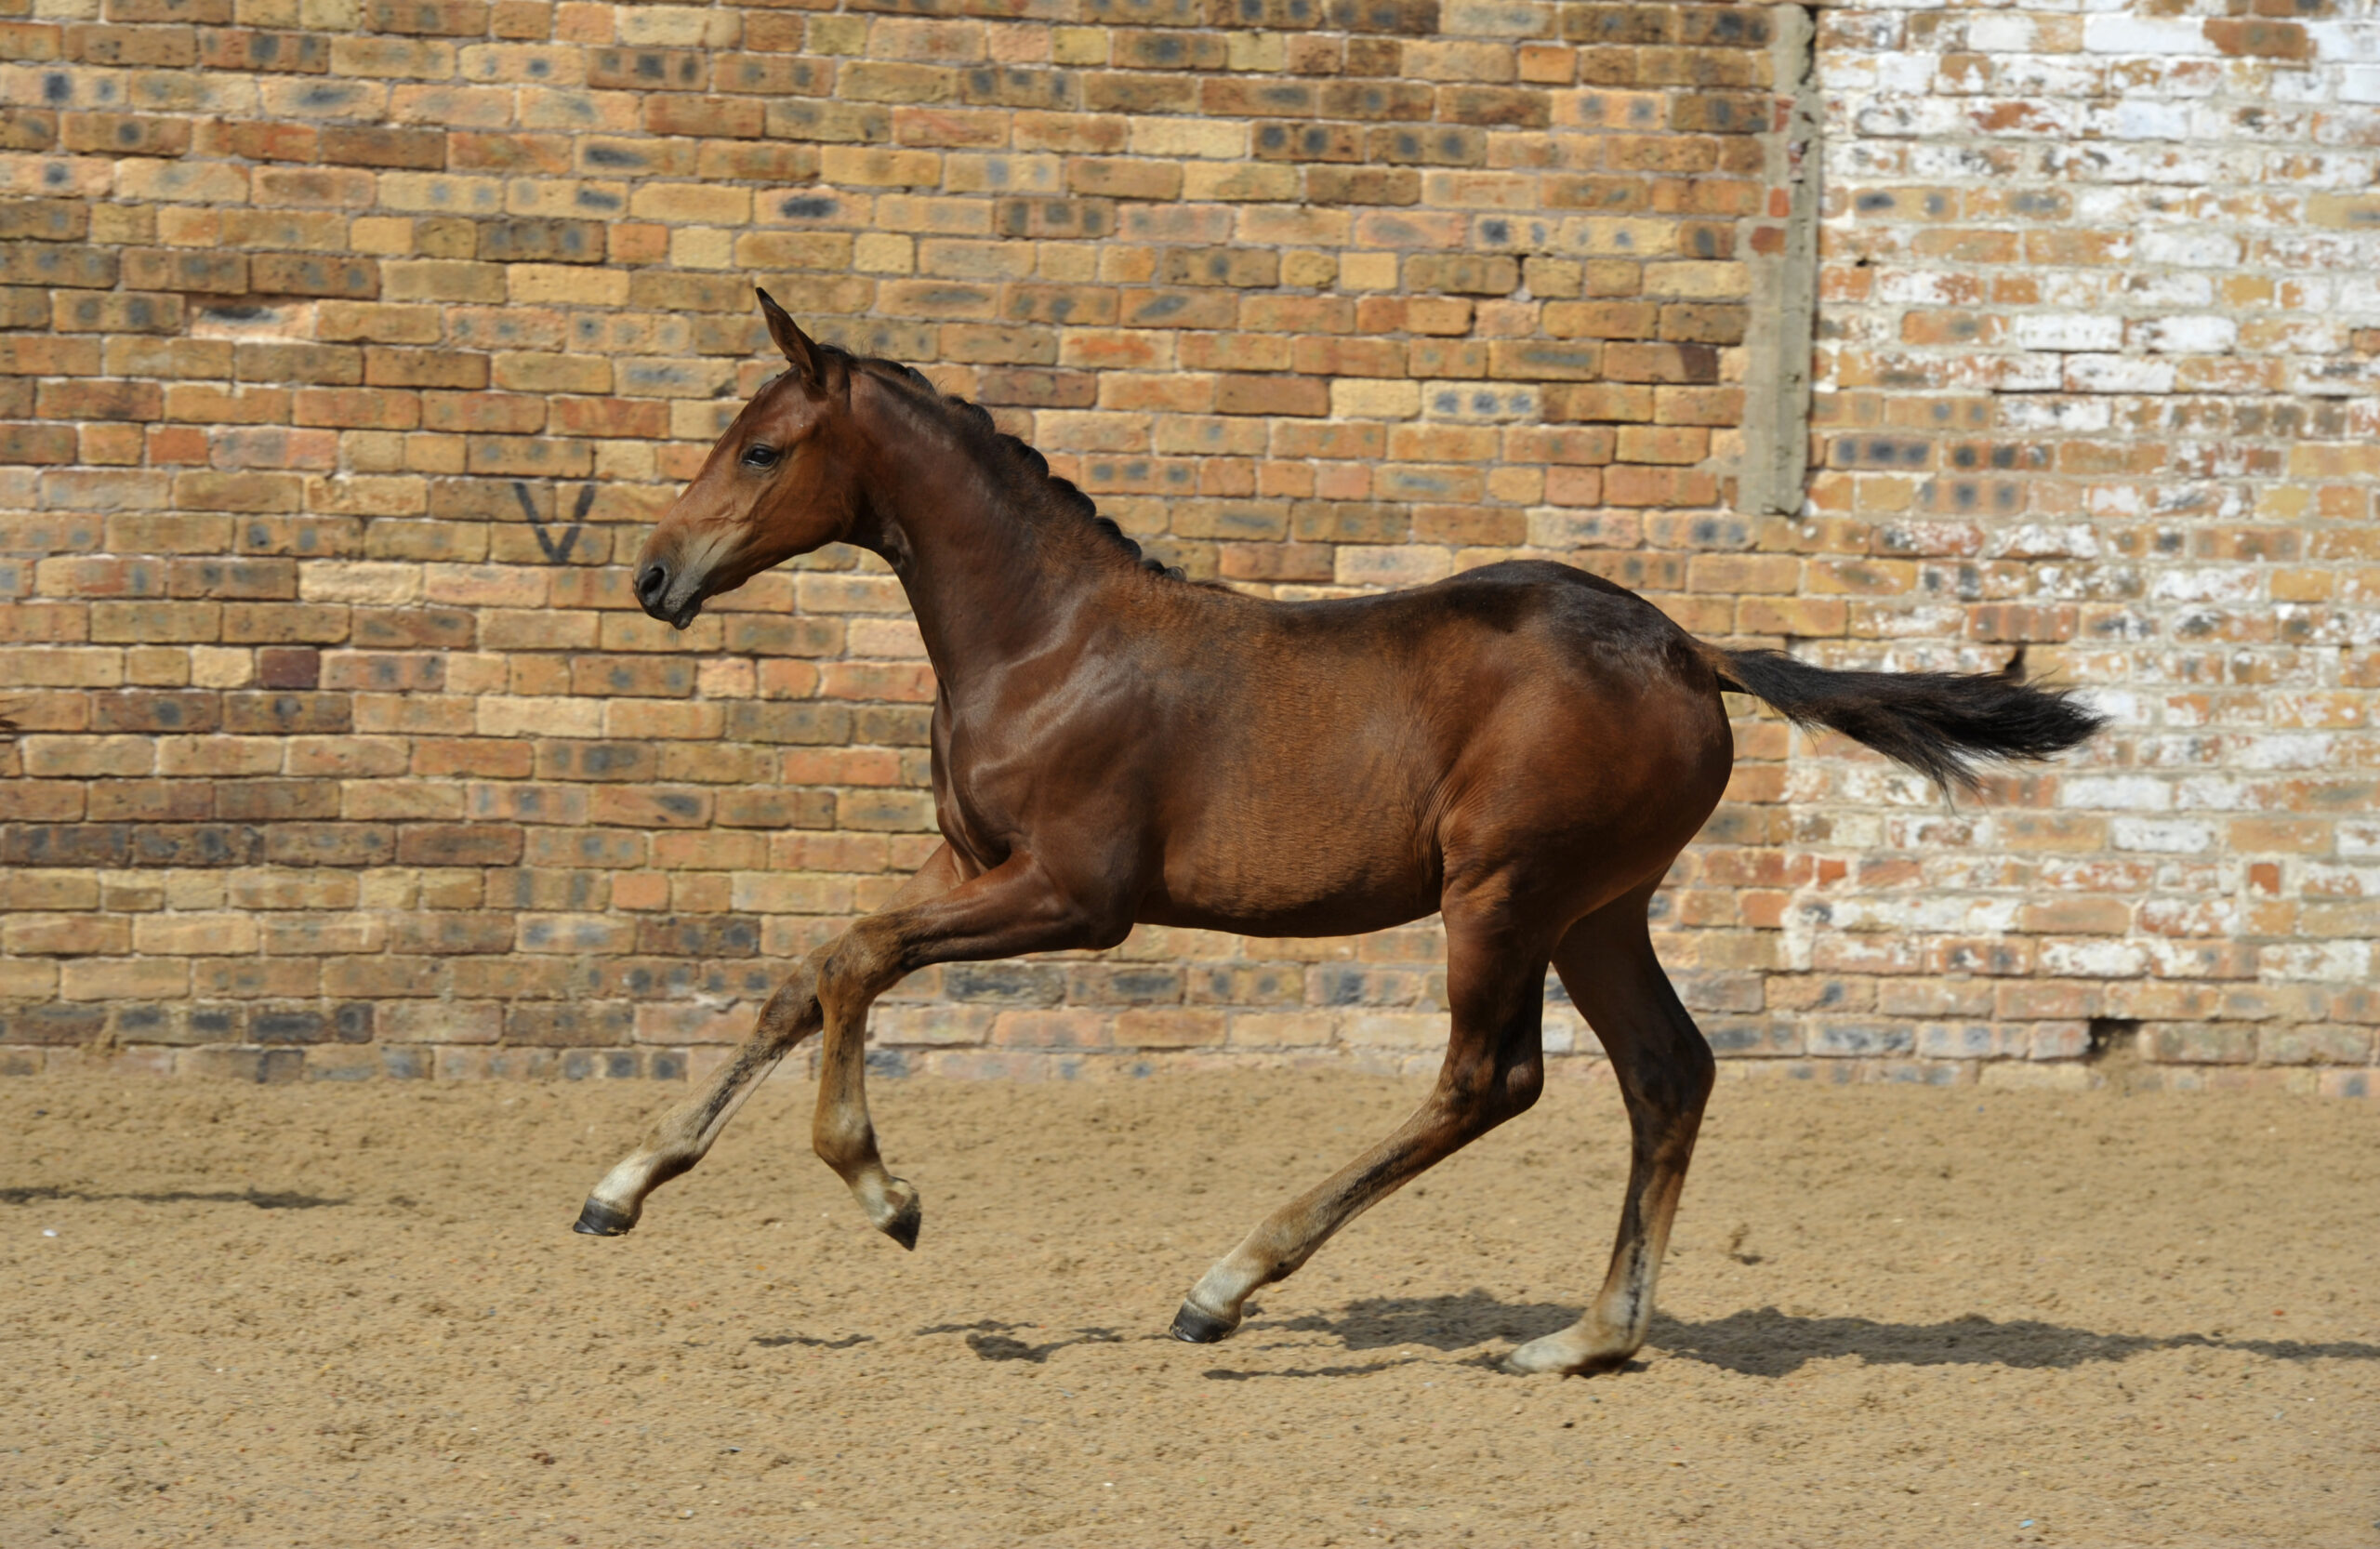 New collection launches for the Science Supplements Bolesworth Elite Foal & Embryo Online Auction